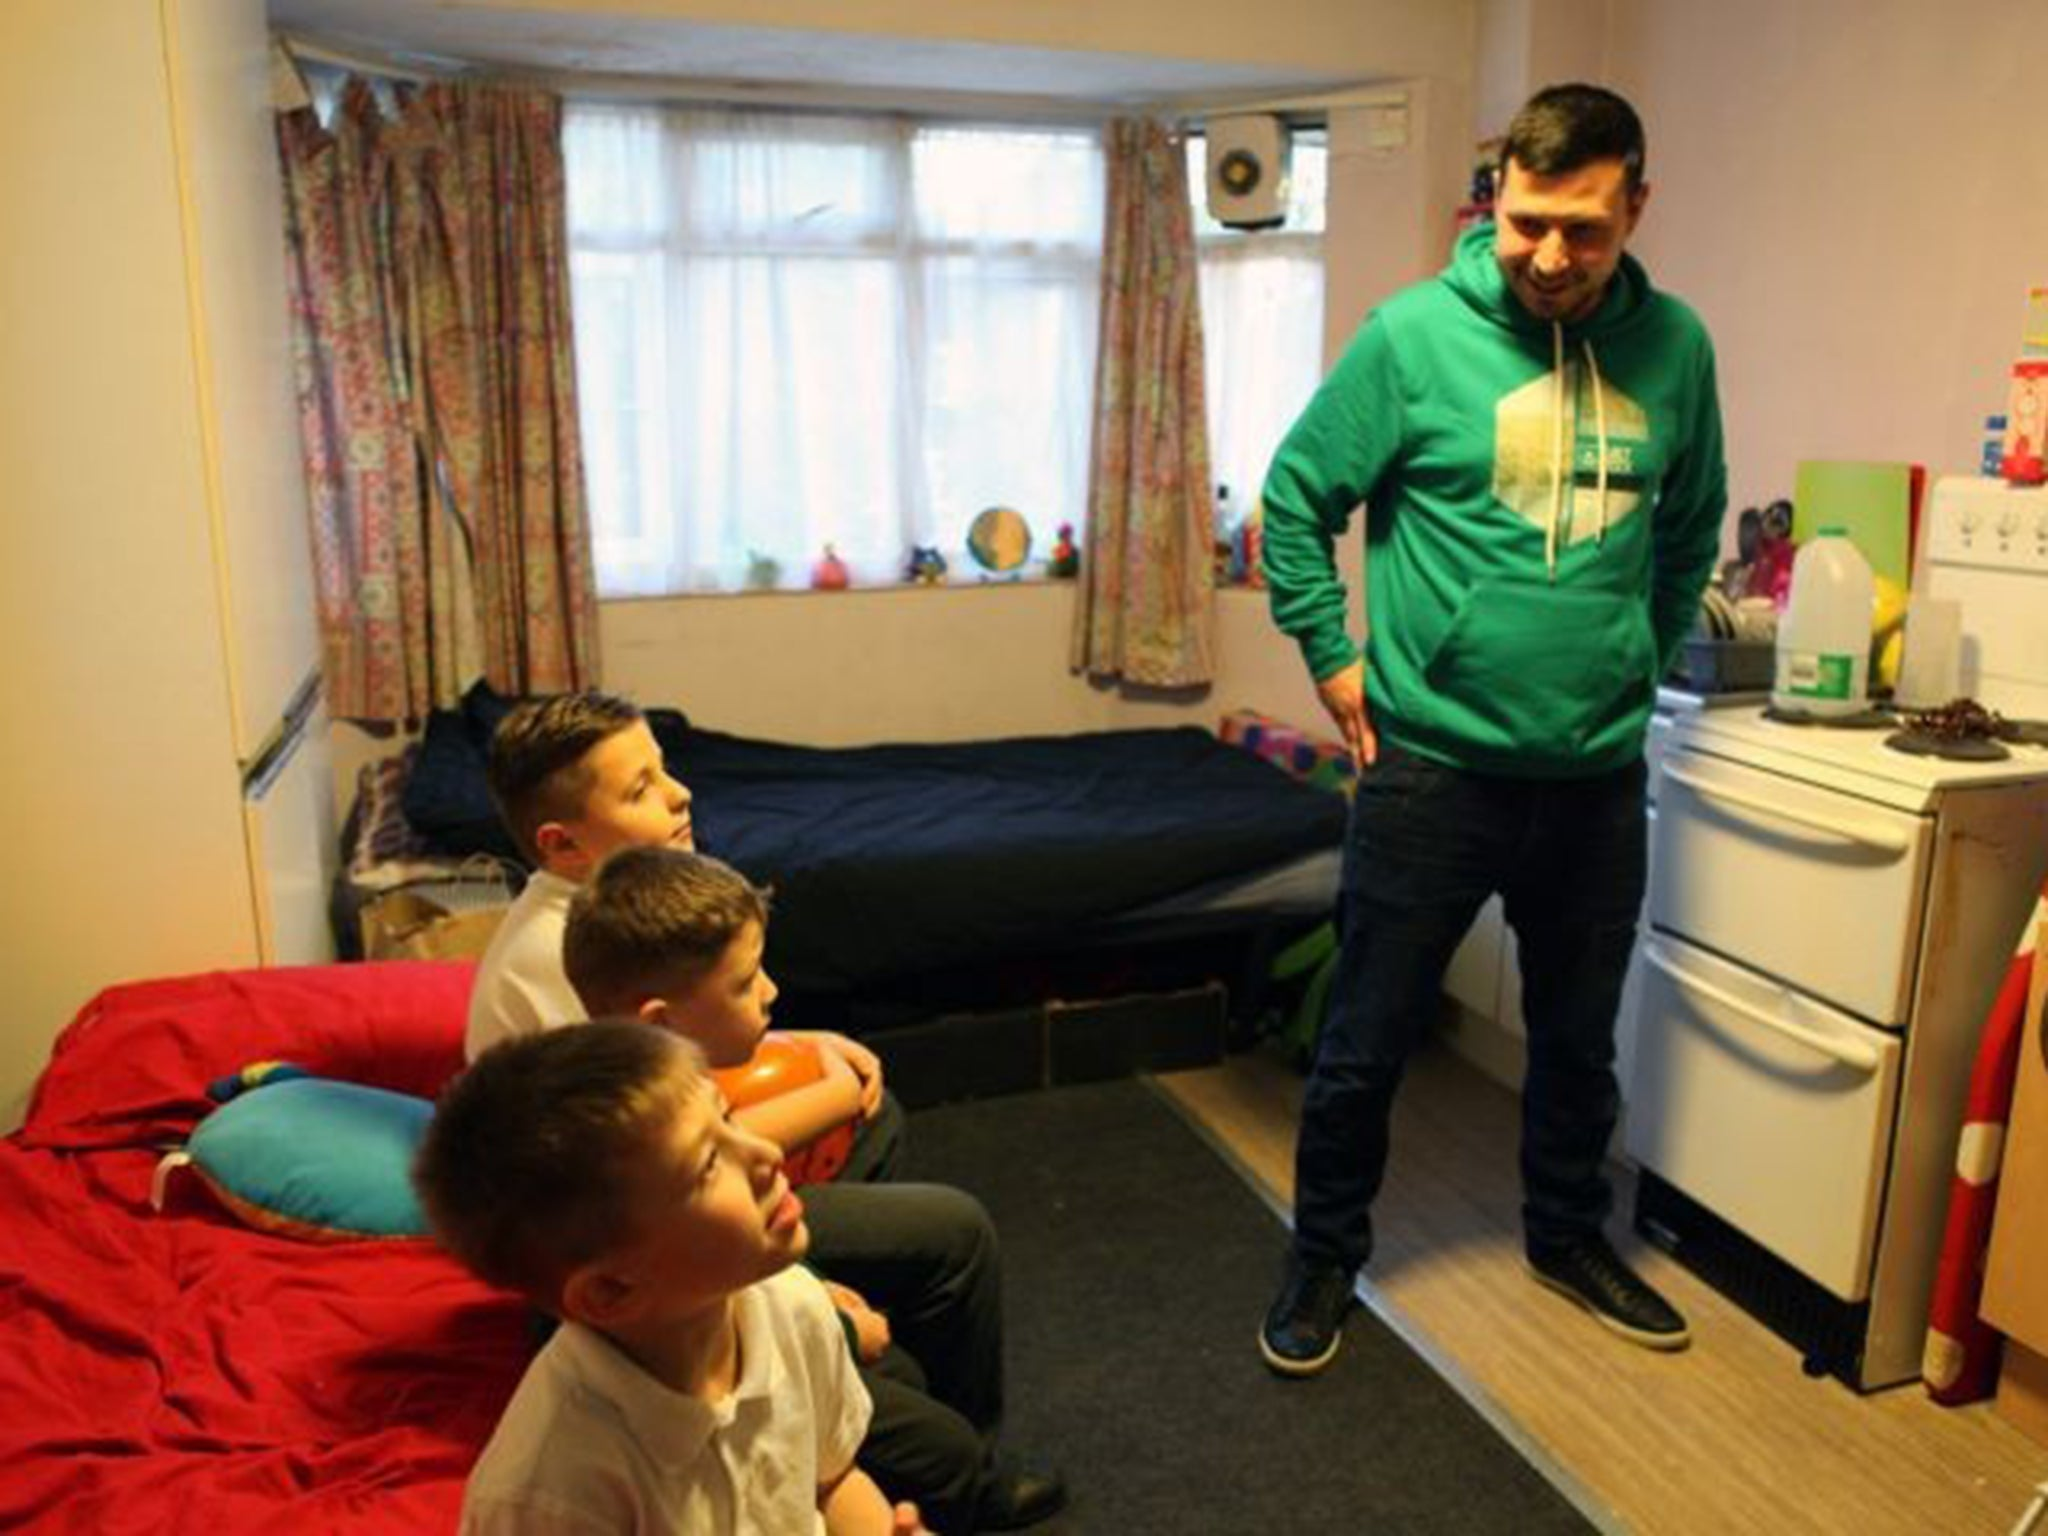 Social housing crisis: Number of homeless children in temporary accommodation soars by 40%